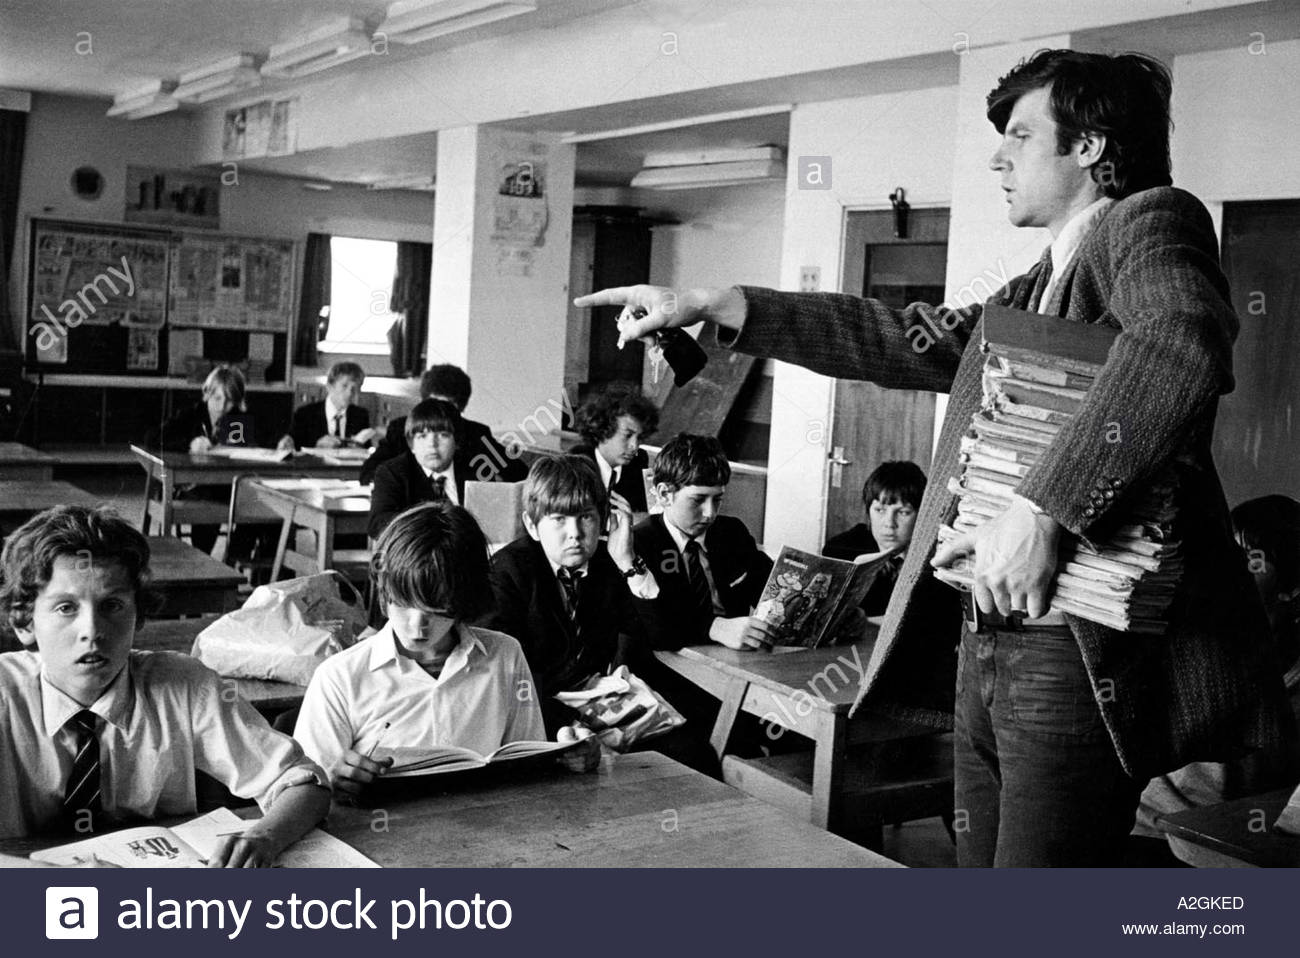 Secondary school teacher trying to control the classroom - Stock Image